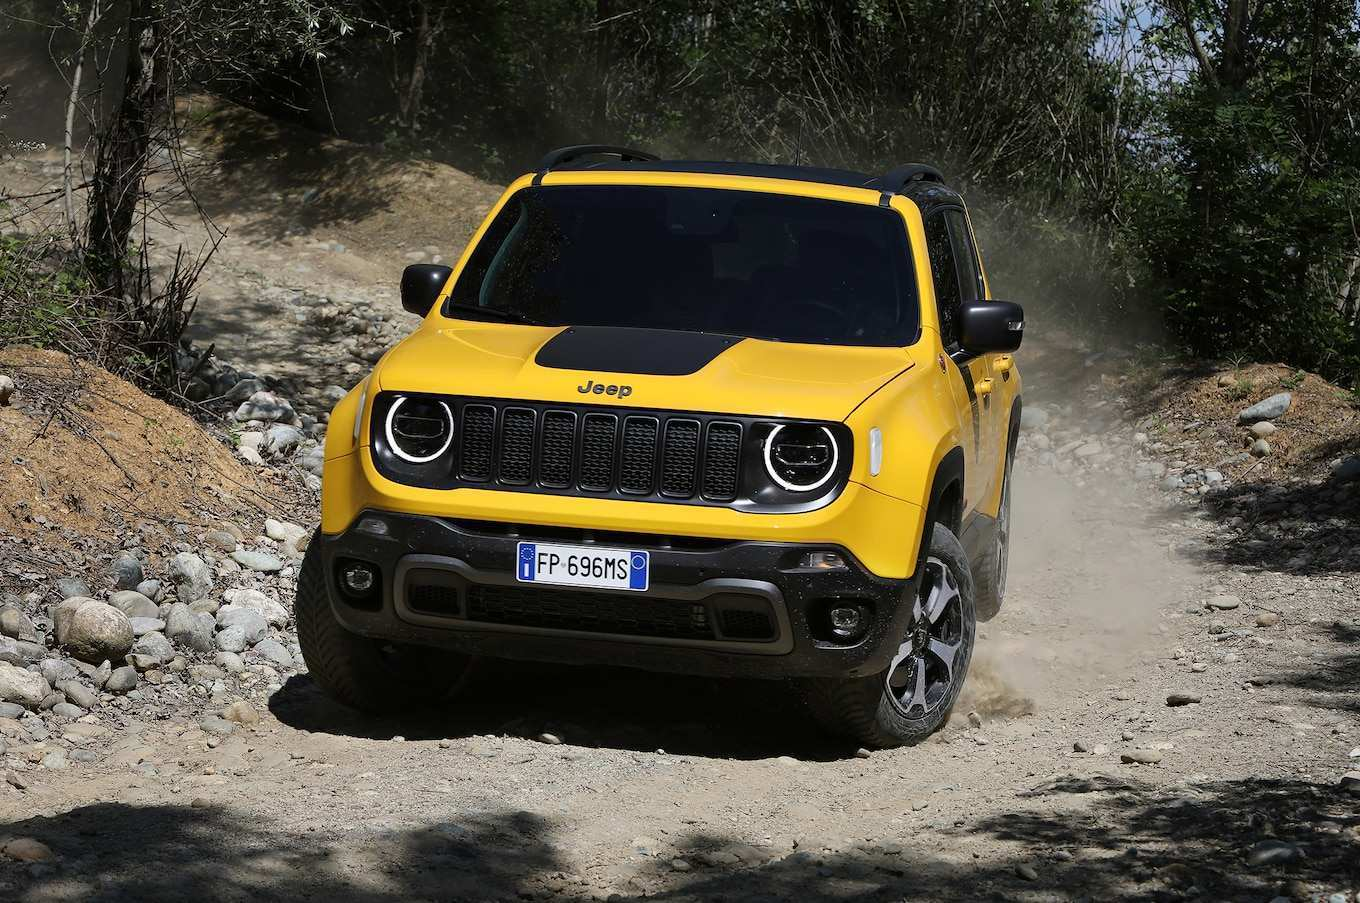 31 Gallery of The Jeep New Car 2019 Redesign And Concept Performance and New Engine for The Jeep New Car 2019 Redesign And Concept